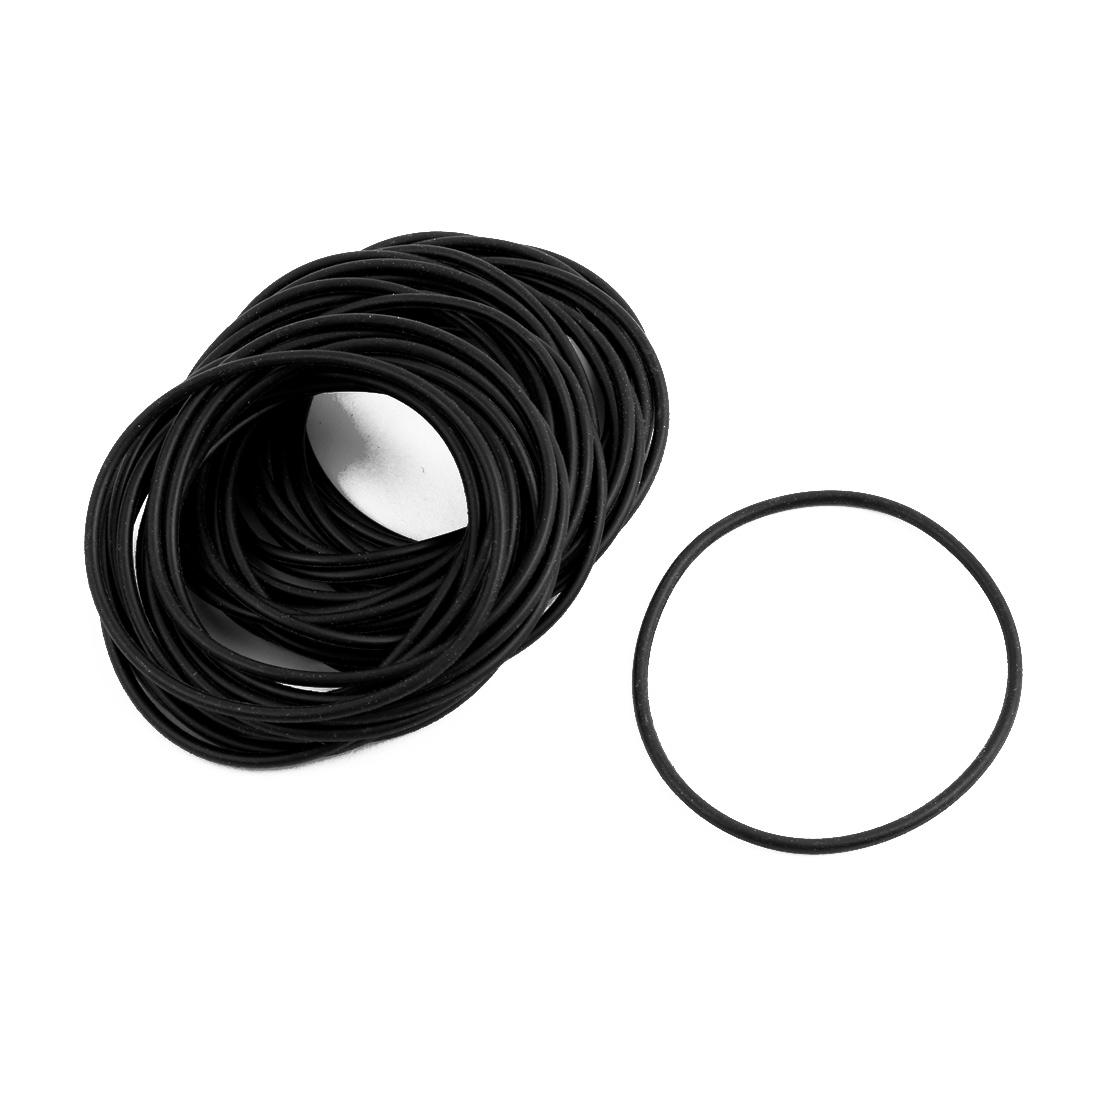 40pcs Black Round Nitrile Butadiene Rubber NBR O-Ring 51mm OD 1.9mm Width